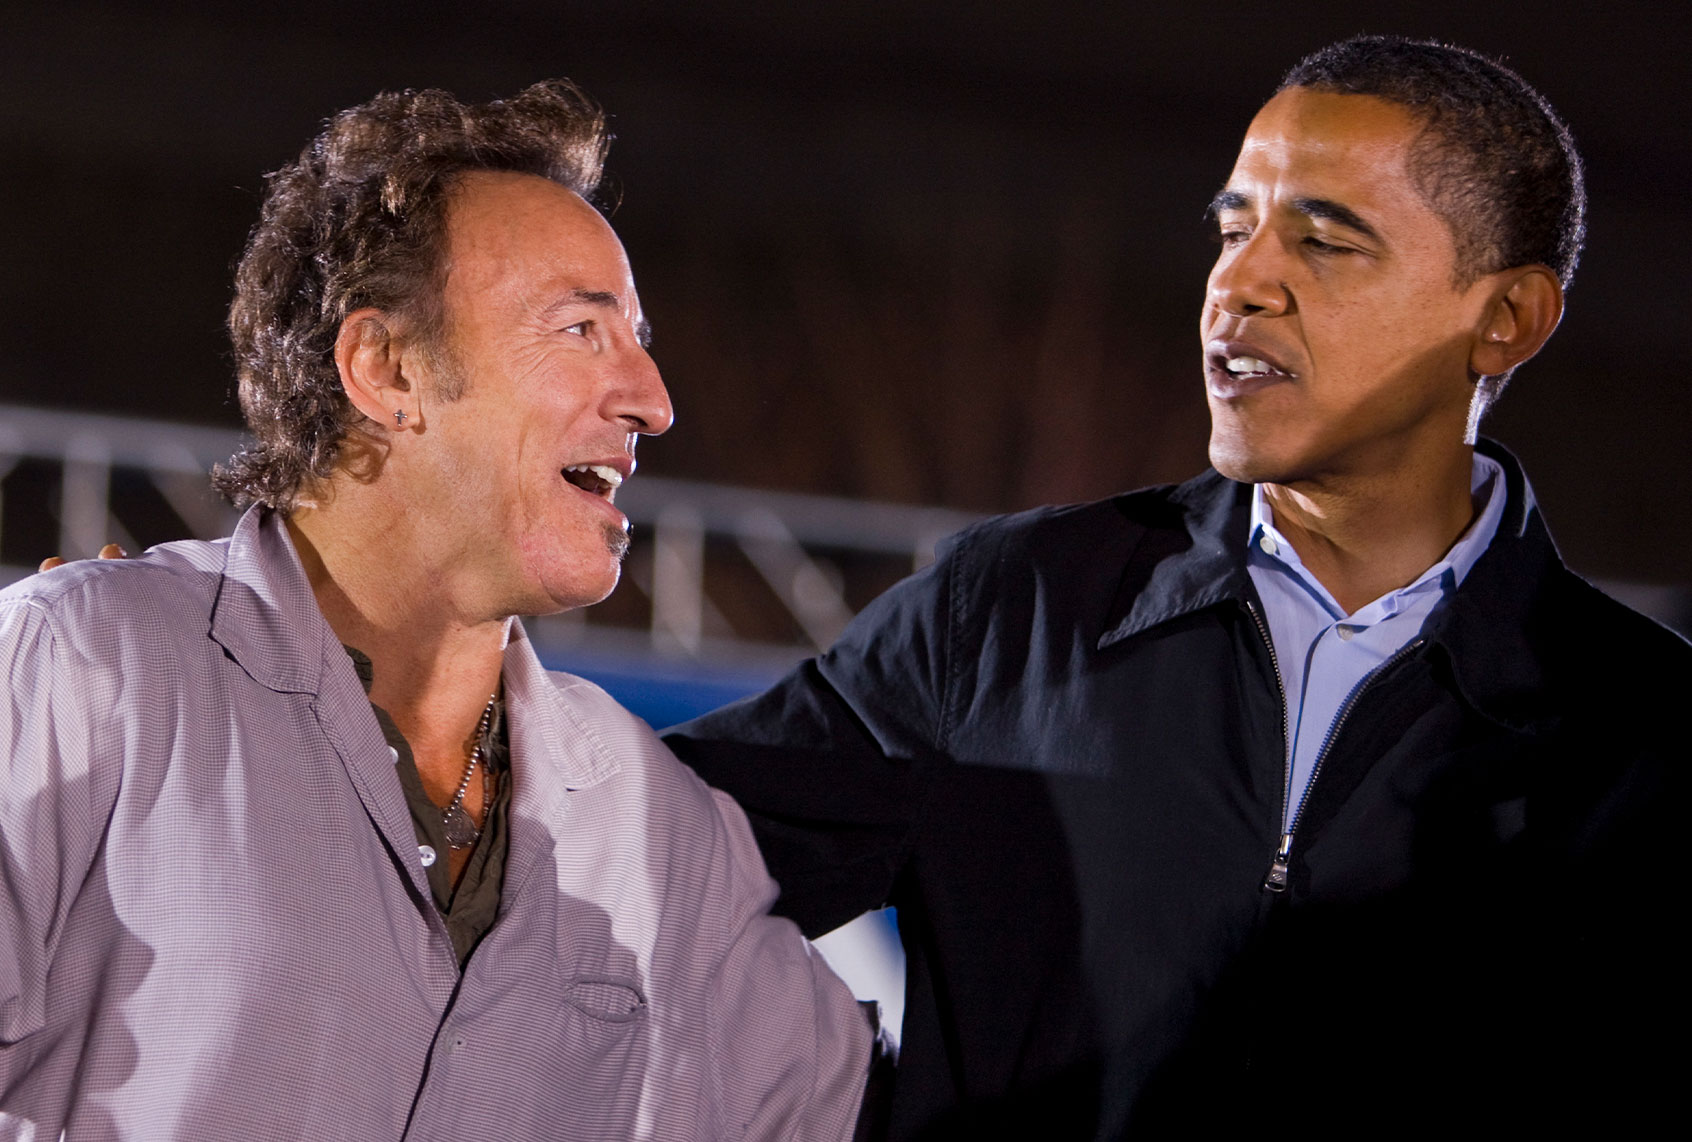 At its heart, Obama and Springsteen's podcast is redefining the toxic masculinity upheld by Trump - Salon